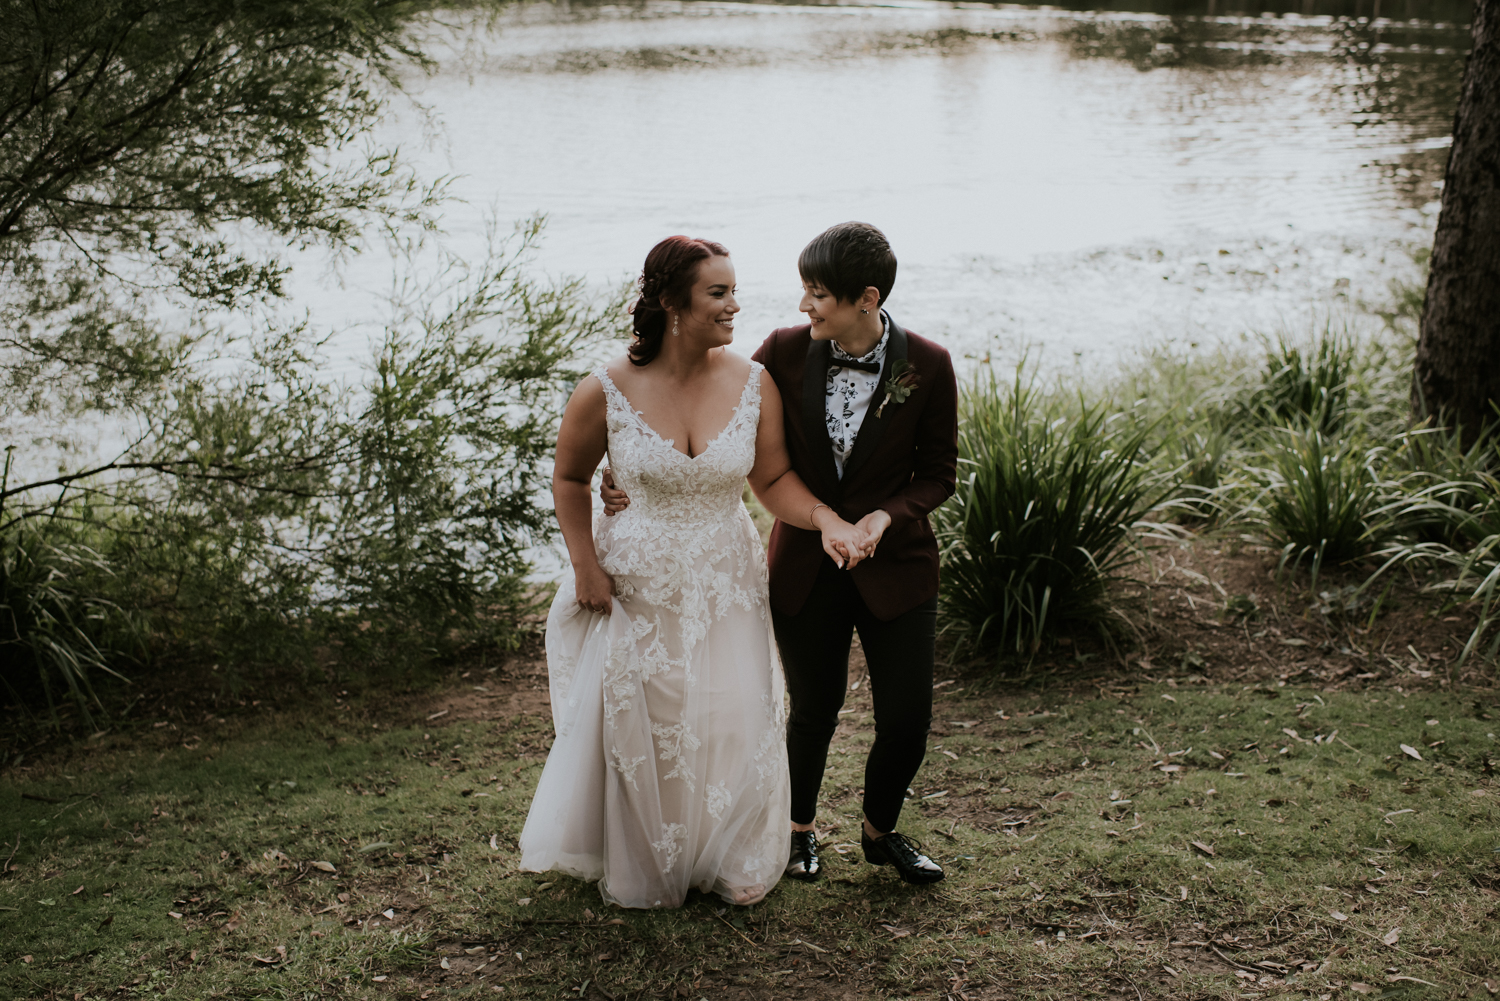 Brisbane Wedding Photographer | Walkabout Creek Photography-91.jpg